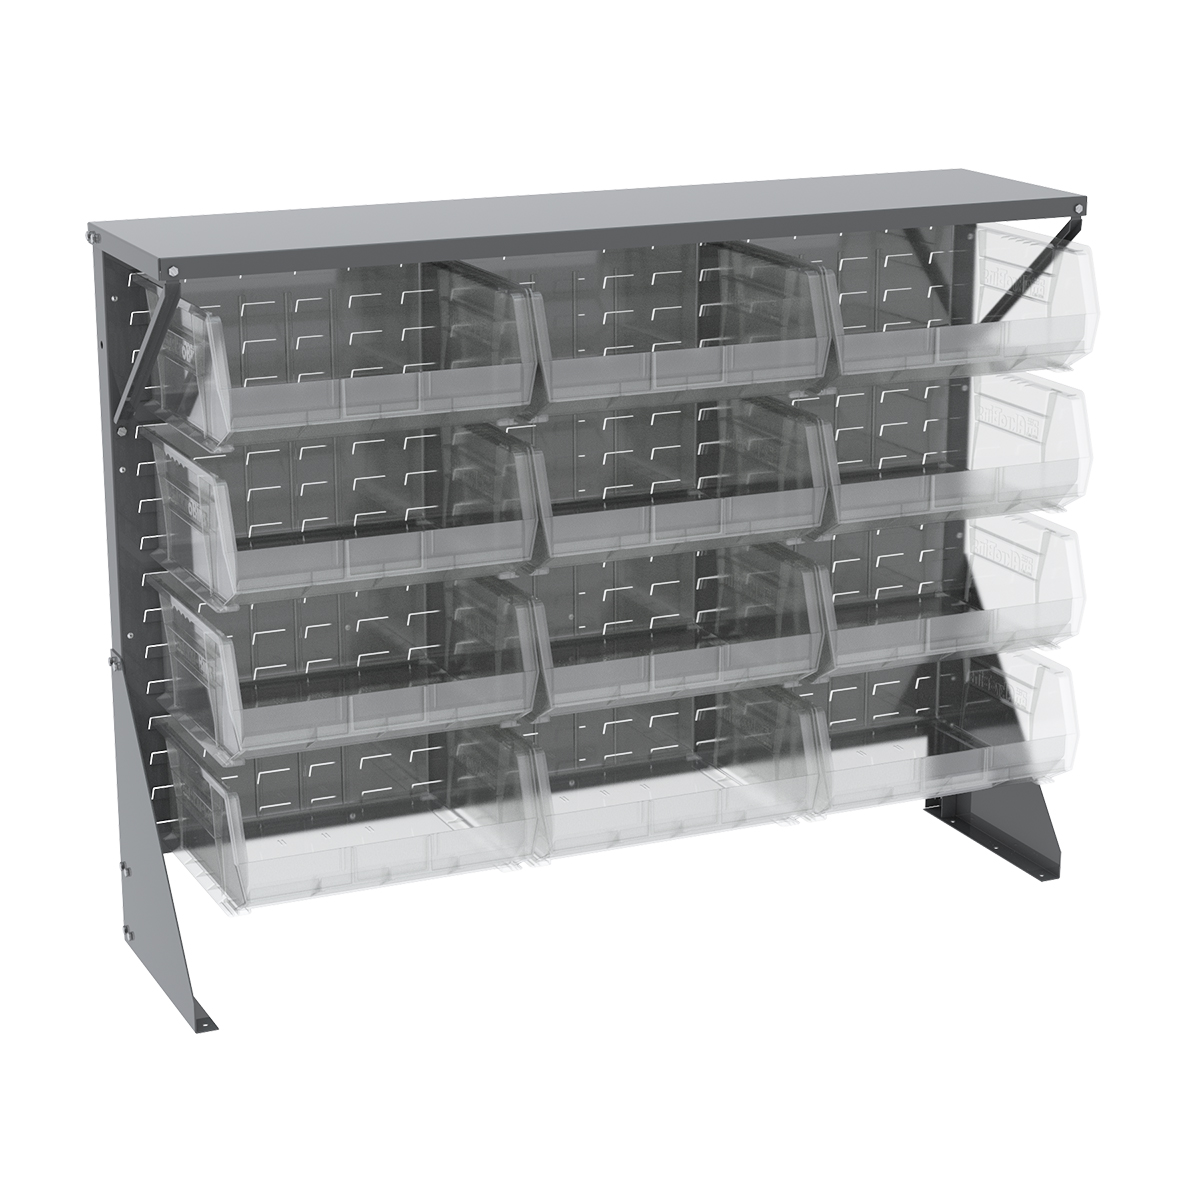 Item DISCONTINUED by Manufacturer.  Low Profile Floor Rack, 1-Sided, Shelf w/ 12 AkroBins, Gray/Clear (30650GY250SC).  This item sold in carton quantities of 1.